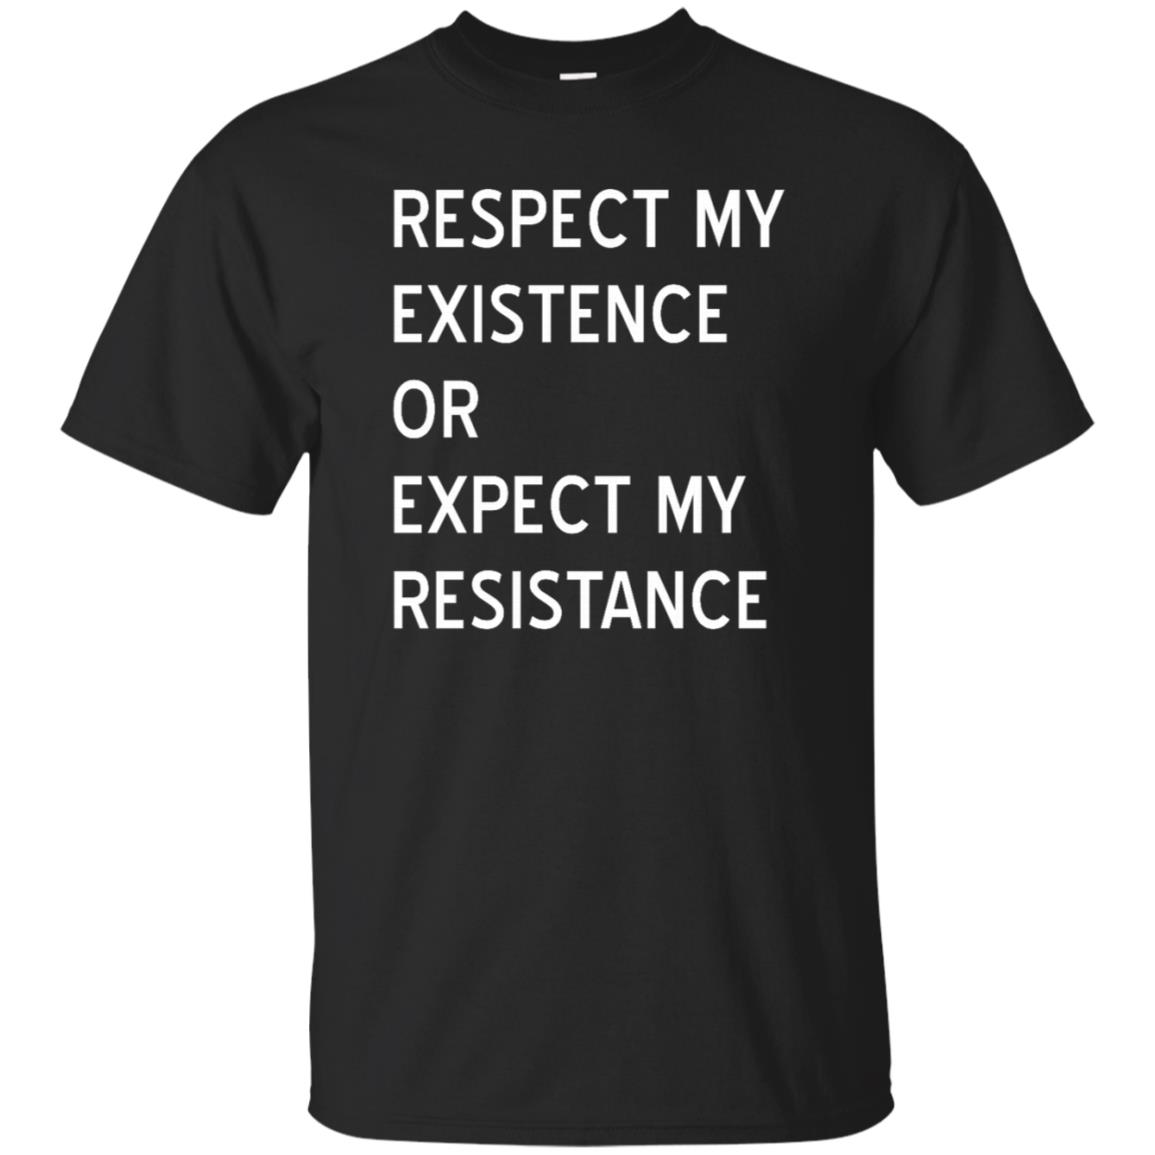 Respect My Existence or Expect Resistance Tee-1 Unisex Short Sleeve